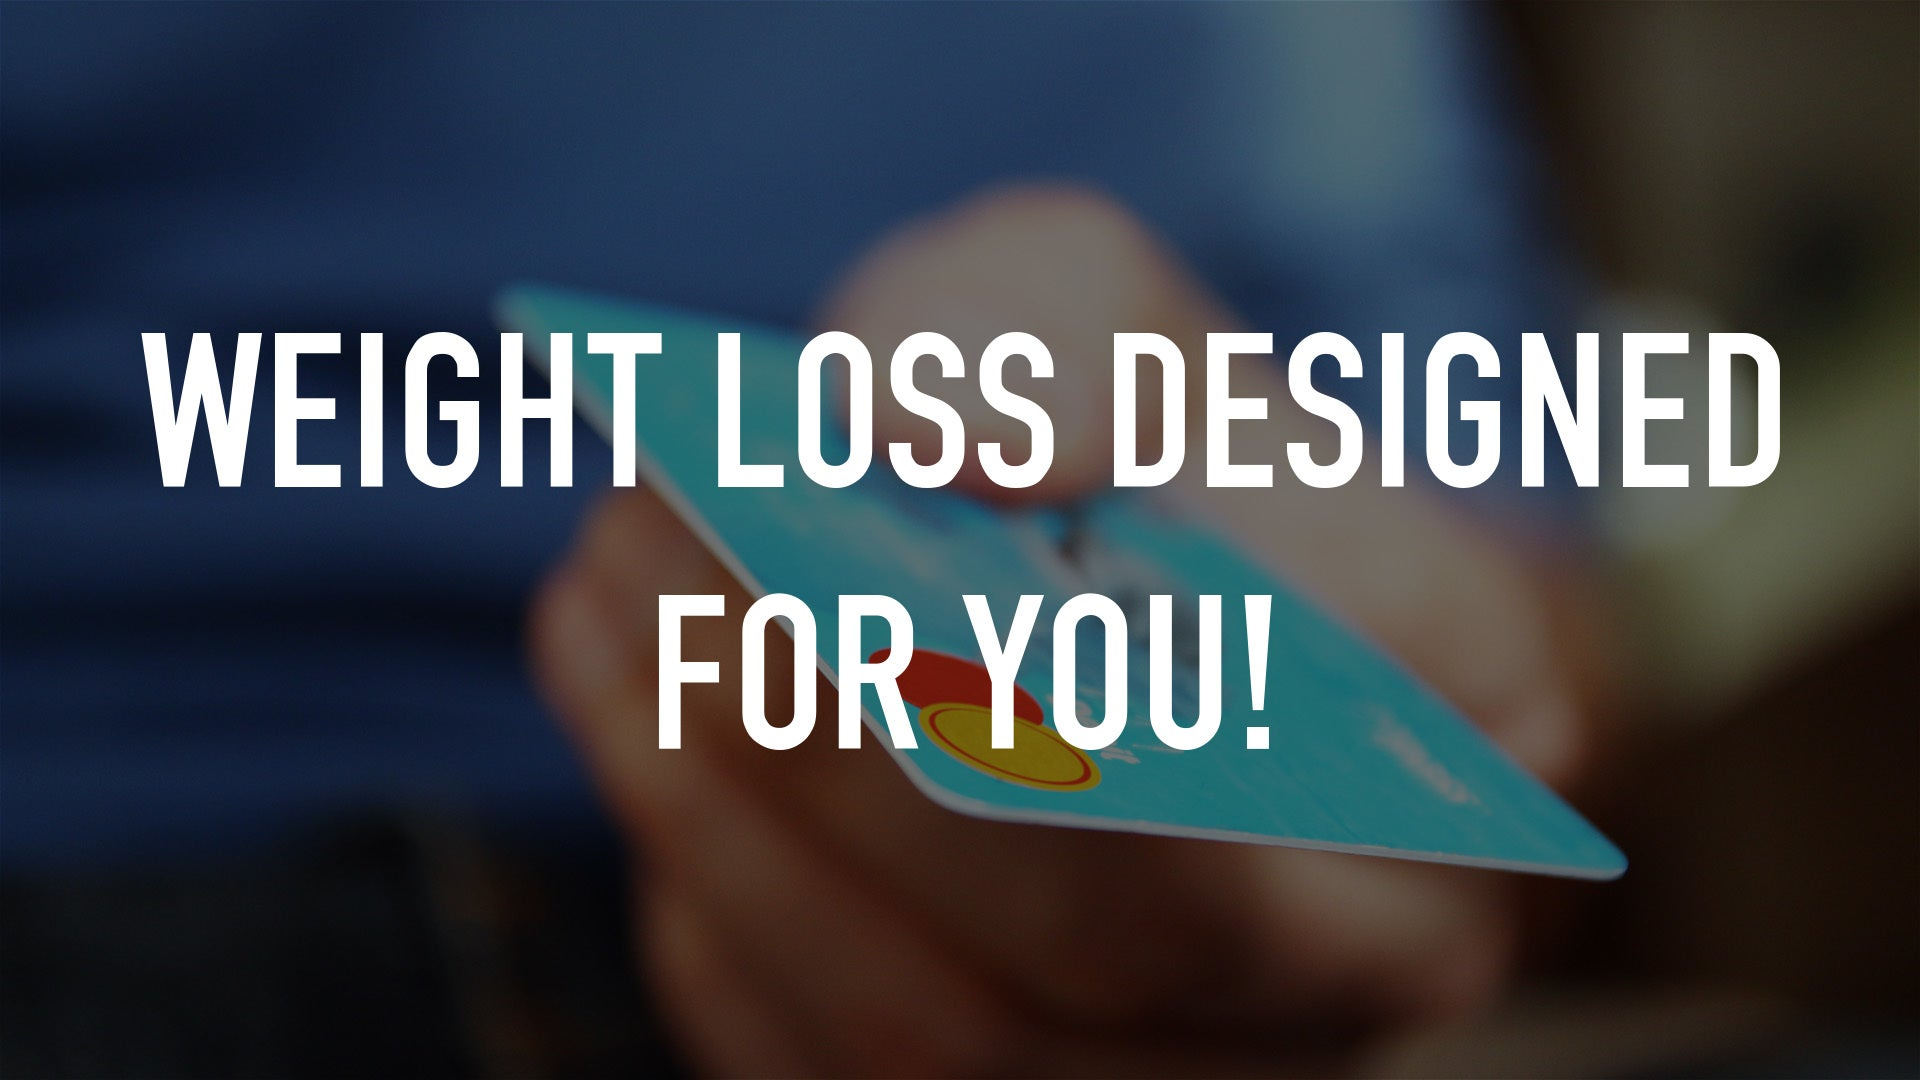 Weight Loss Designed for YOU!